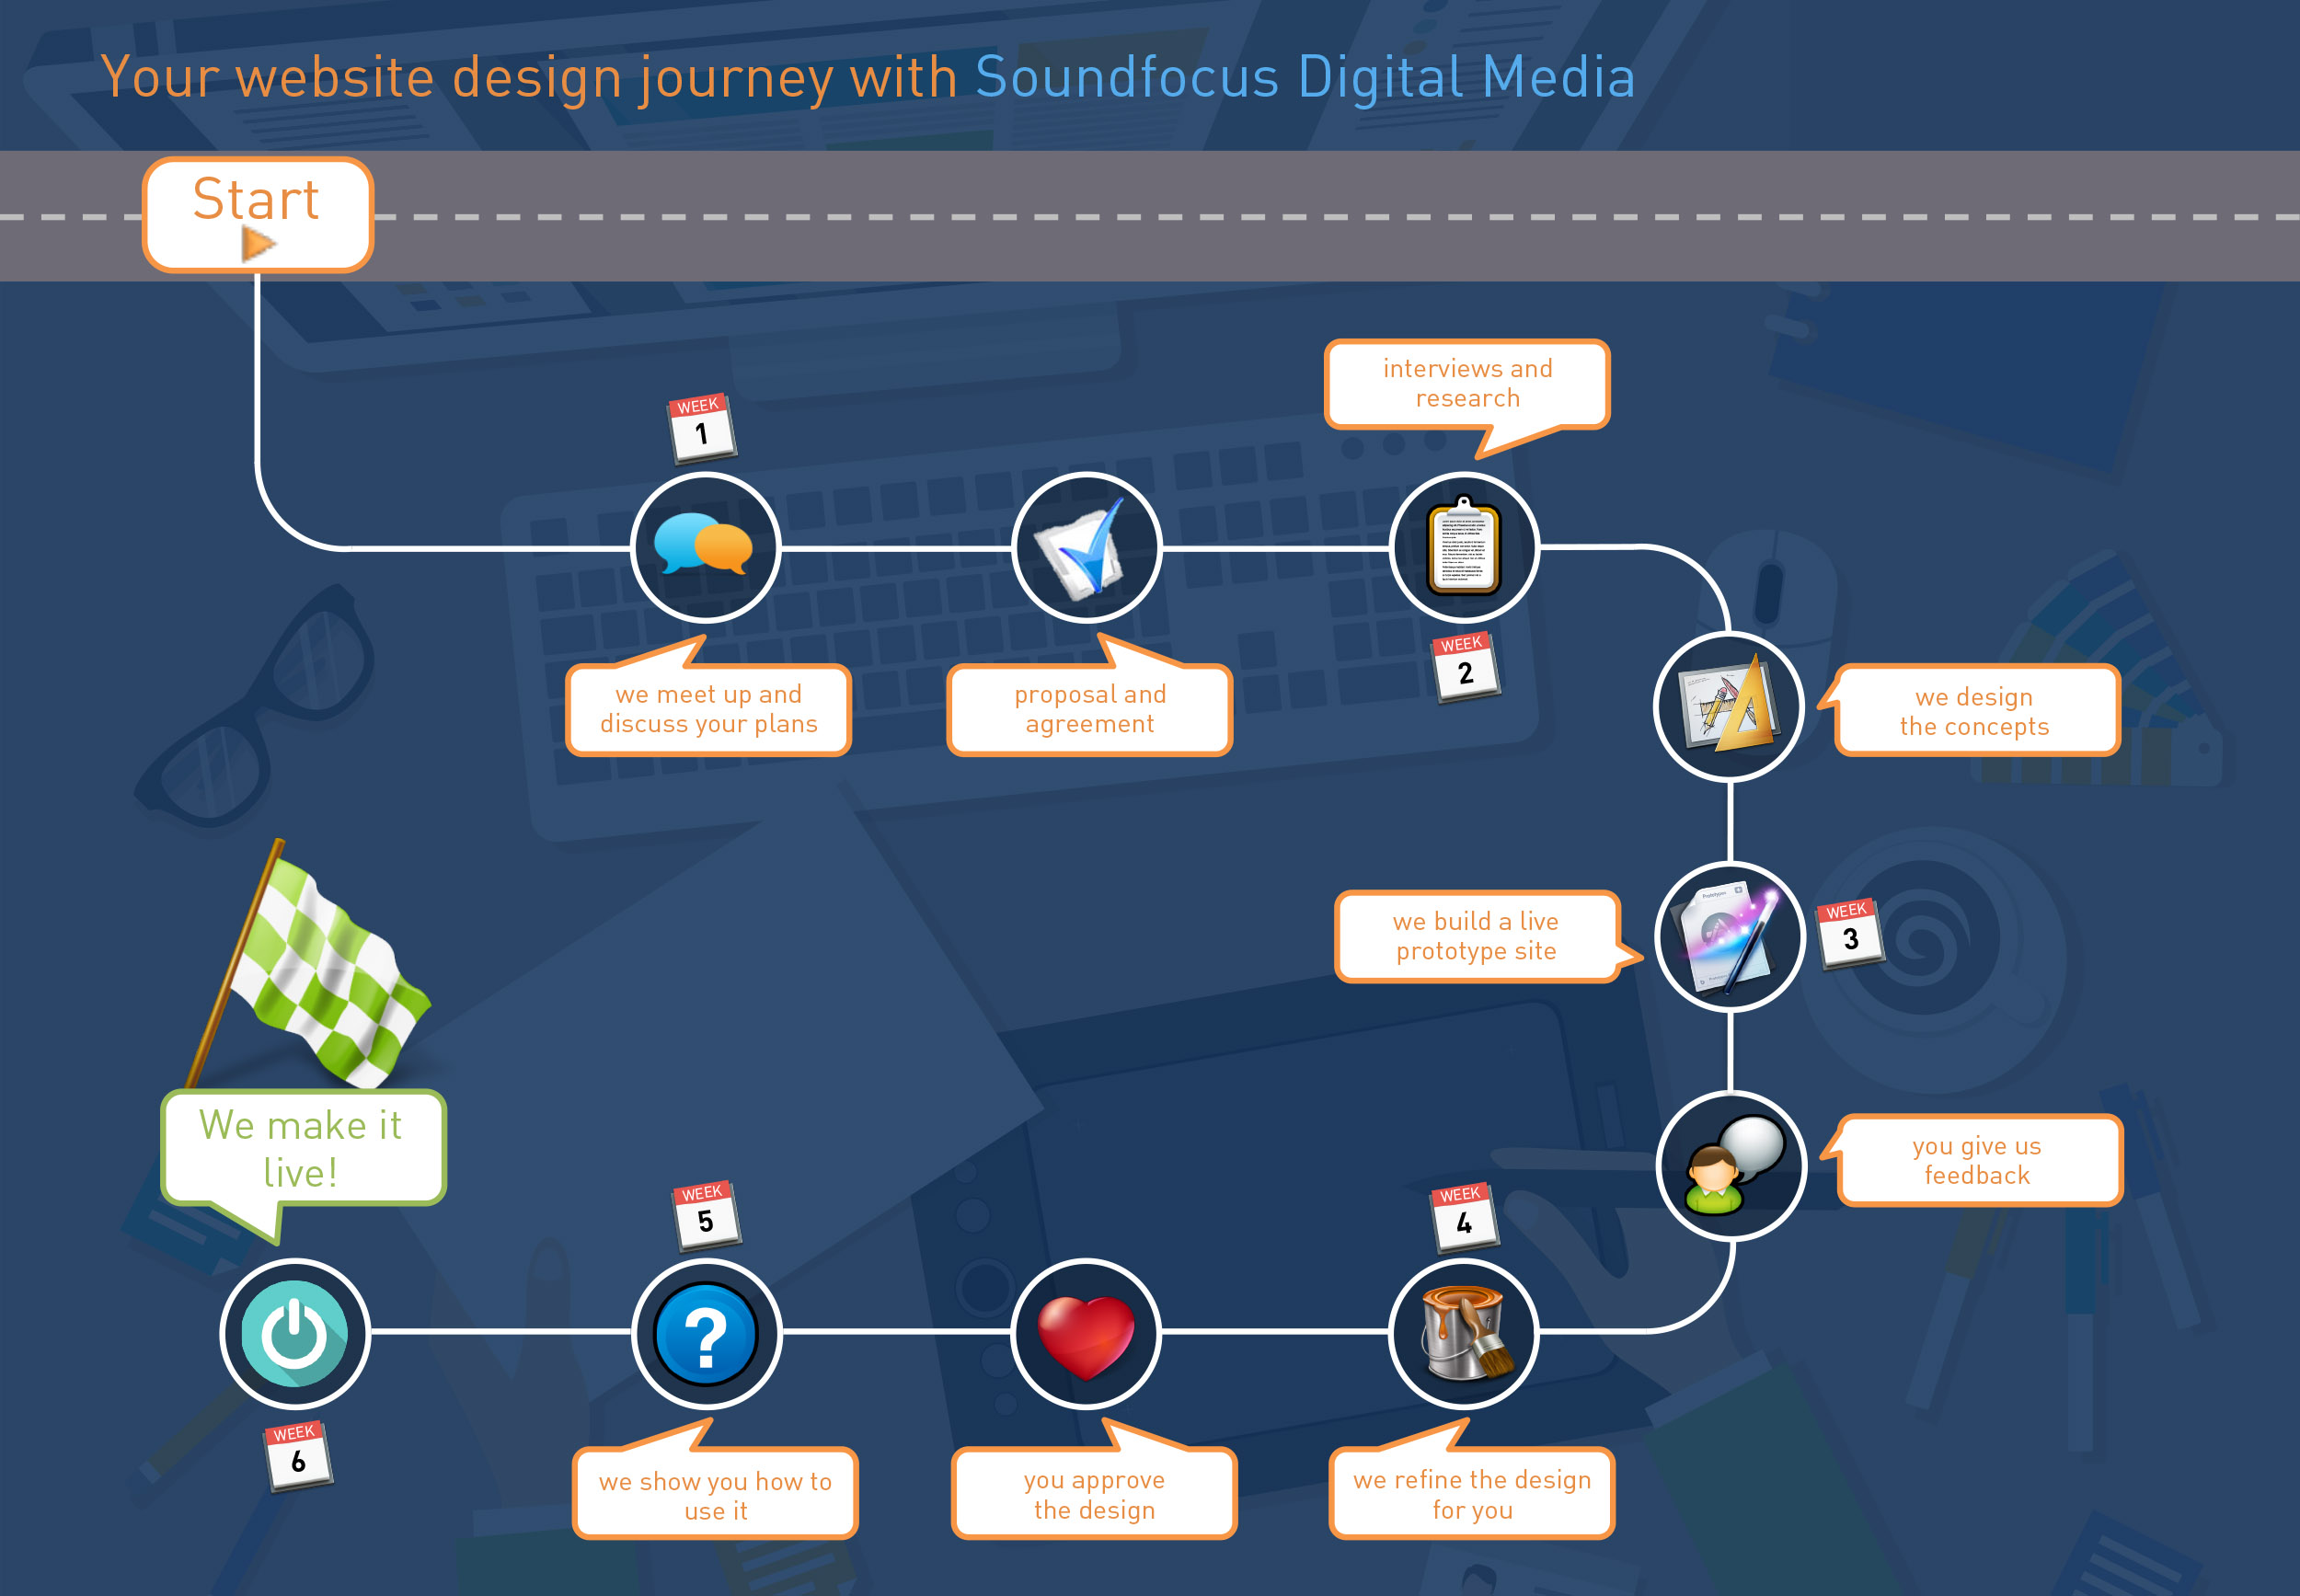 The Website Design Journey